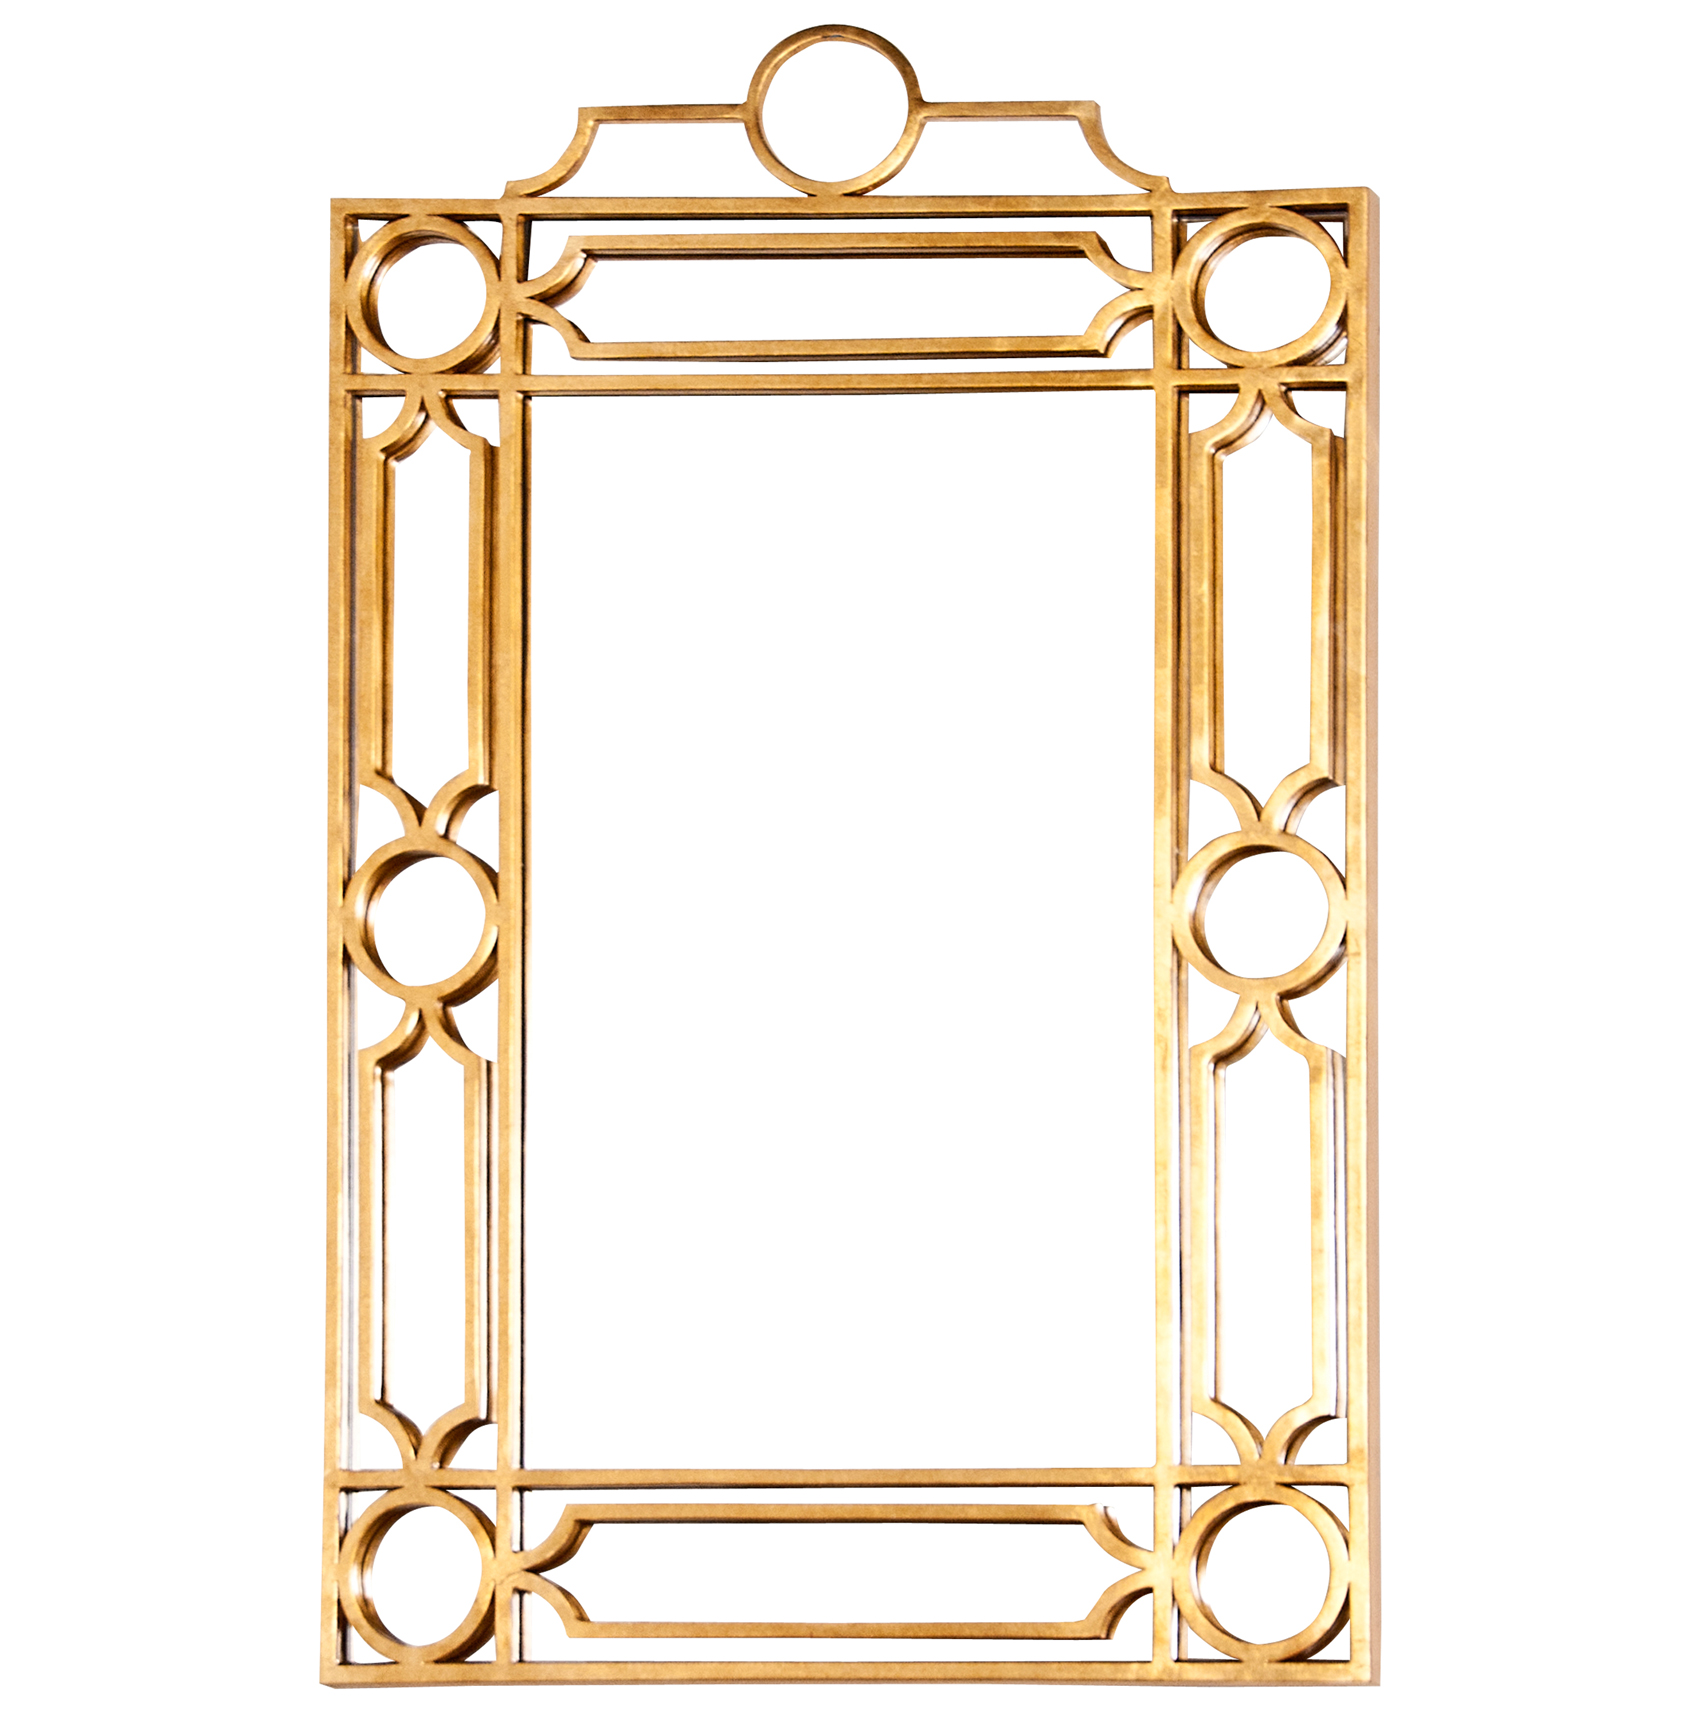 Brando Hollywood Regency Gold Trellis Wall Mirror